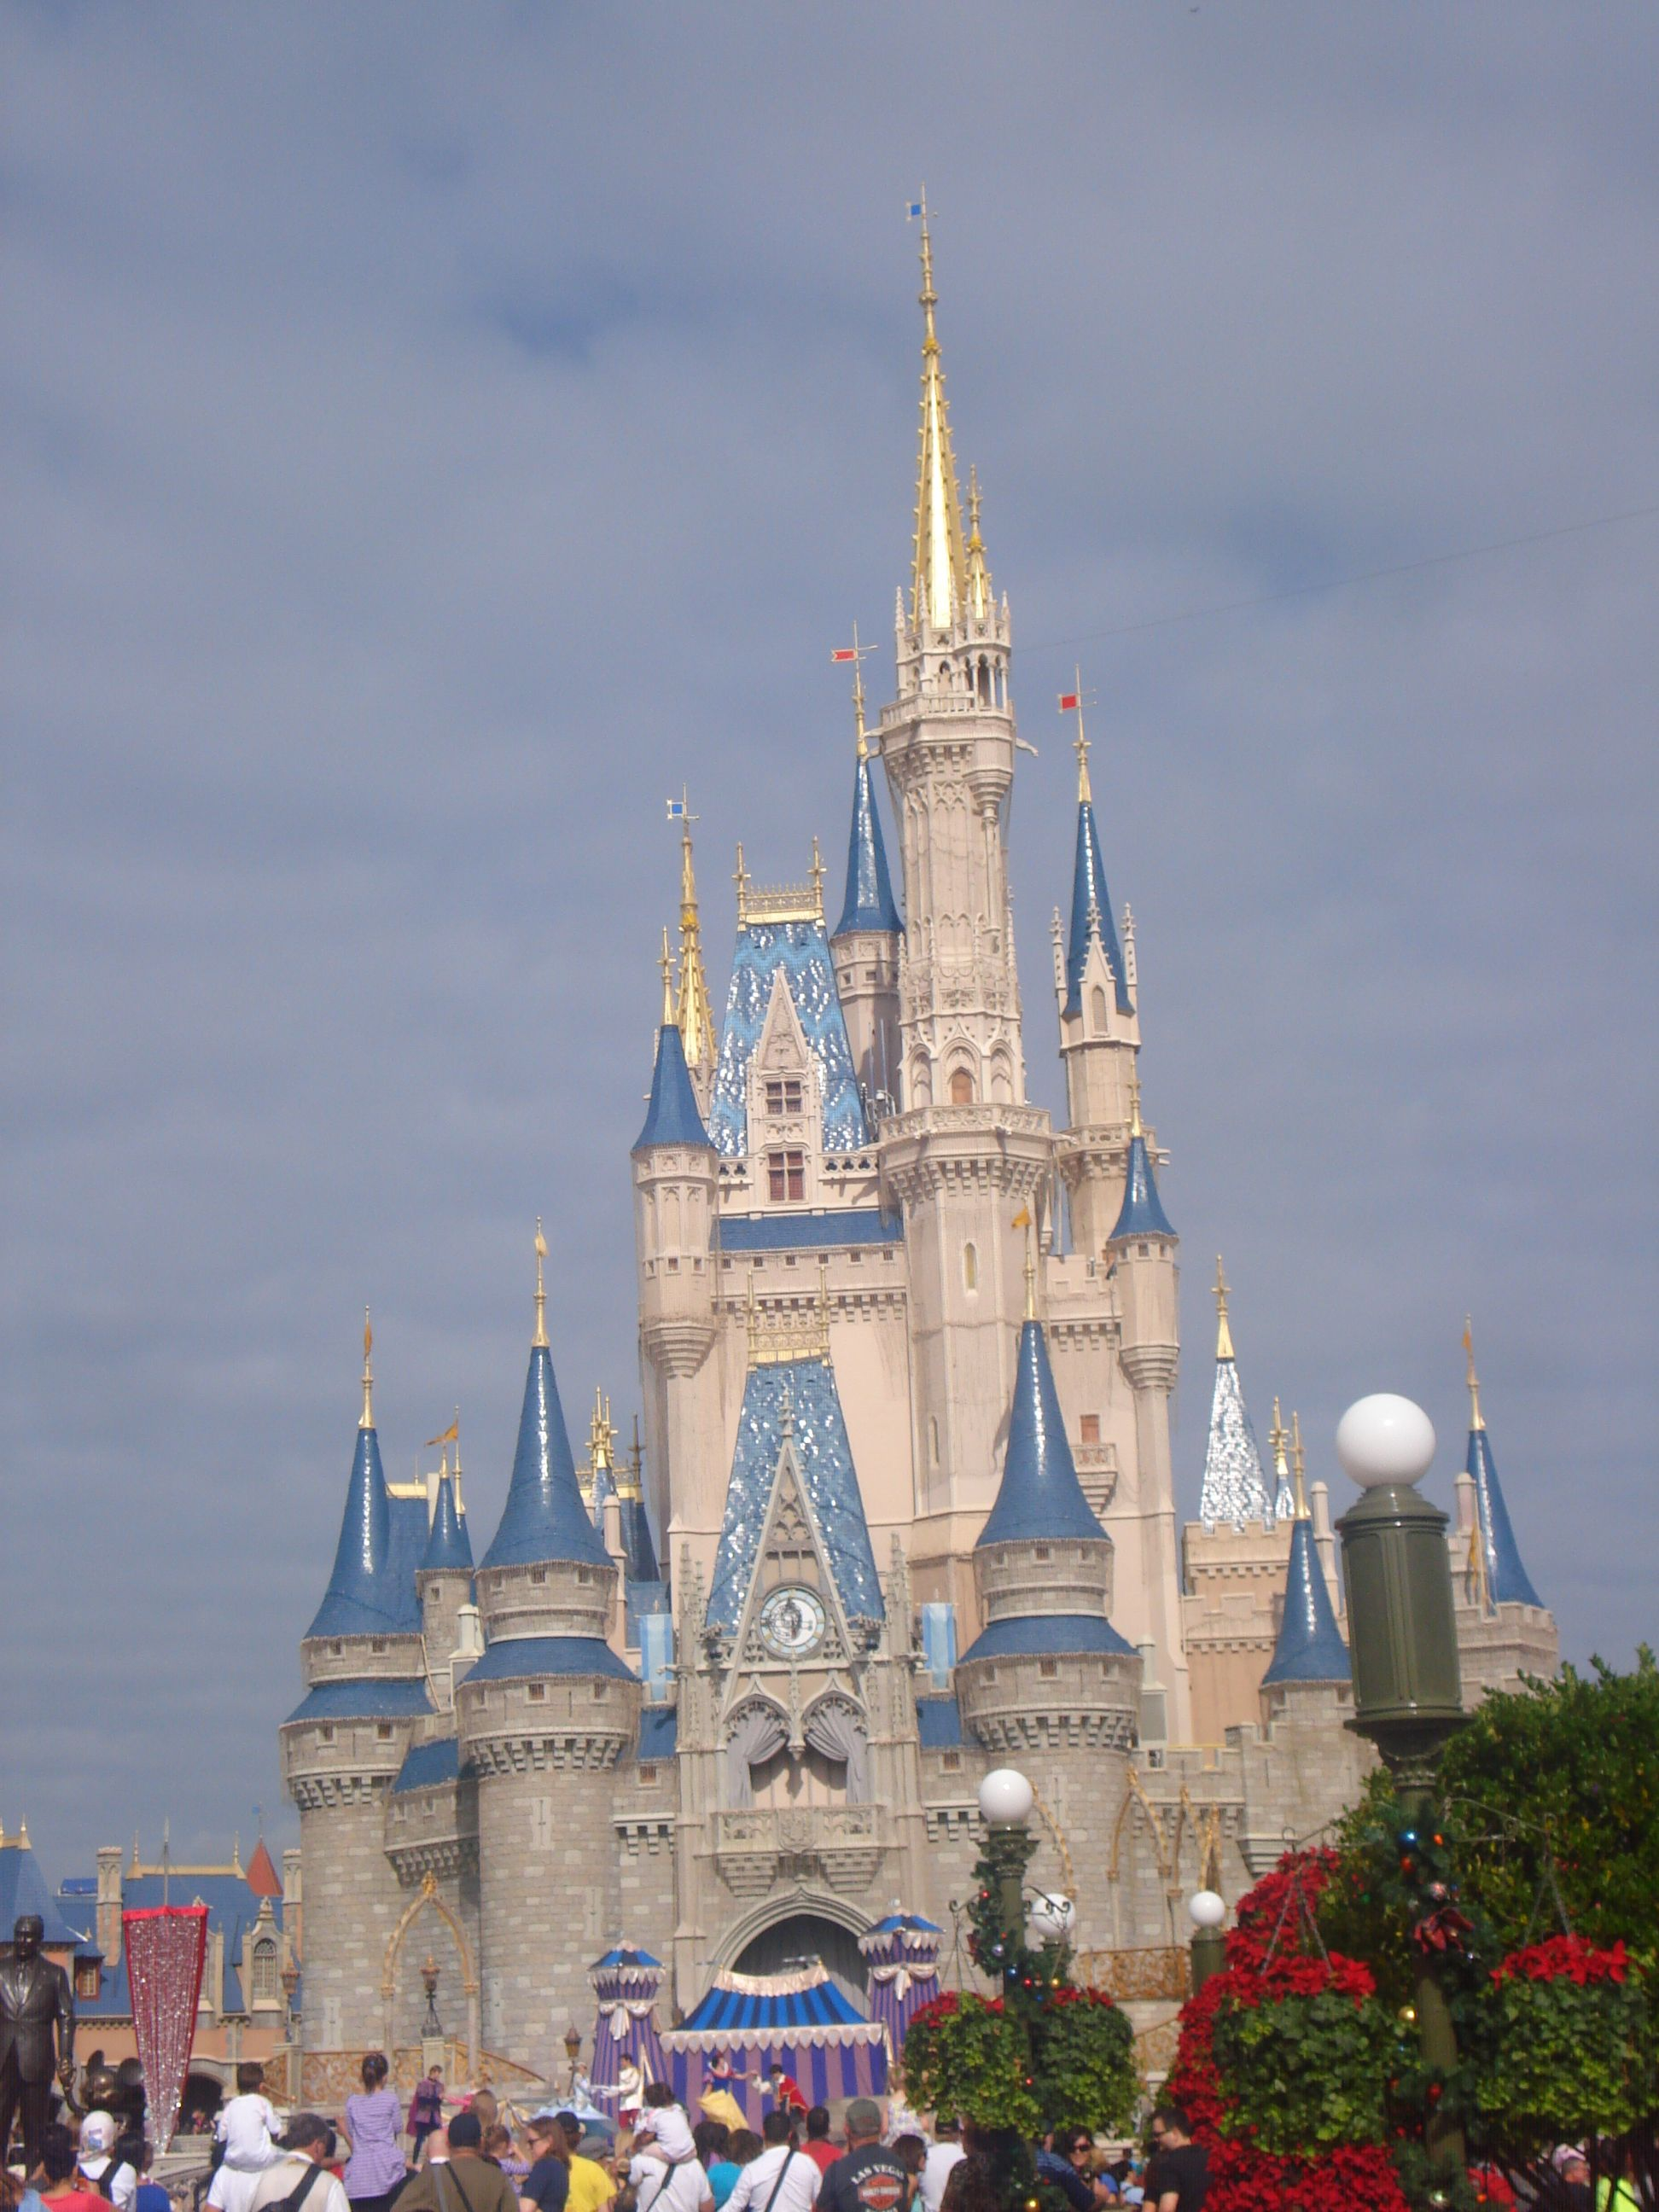 Magic Kingdom Orlando, Florida I want to be there right now